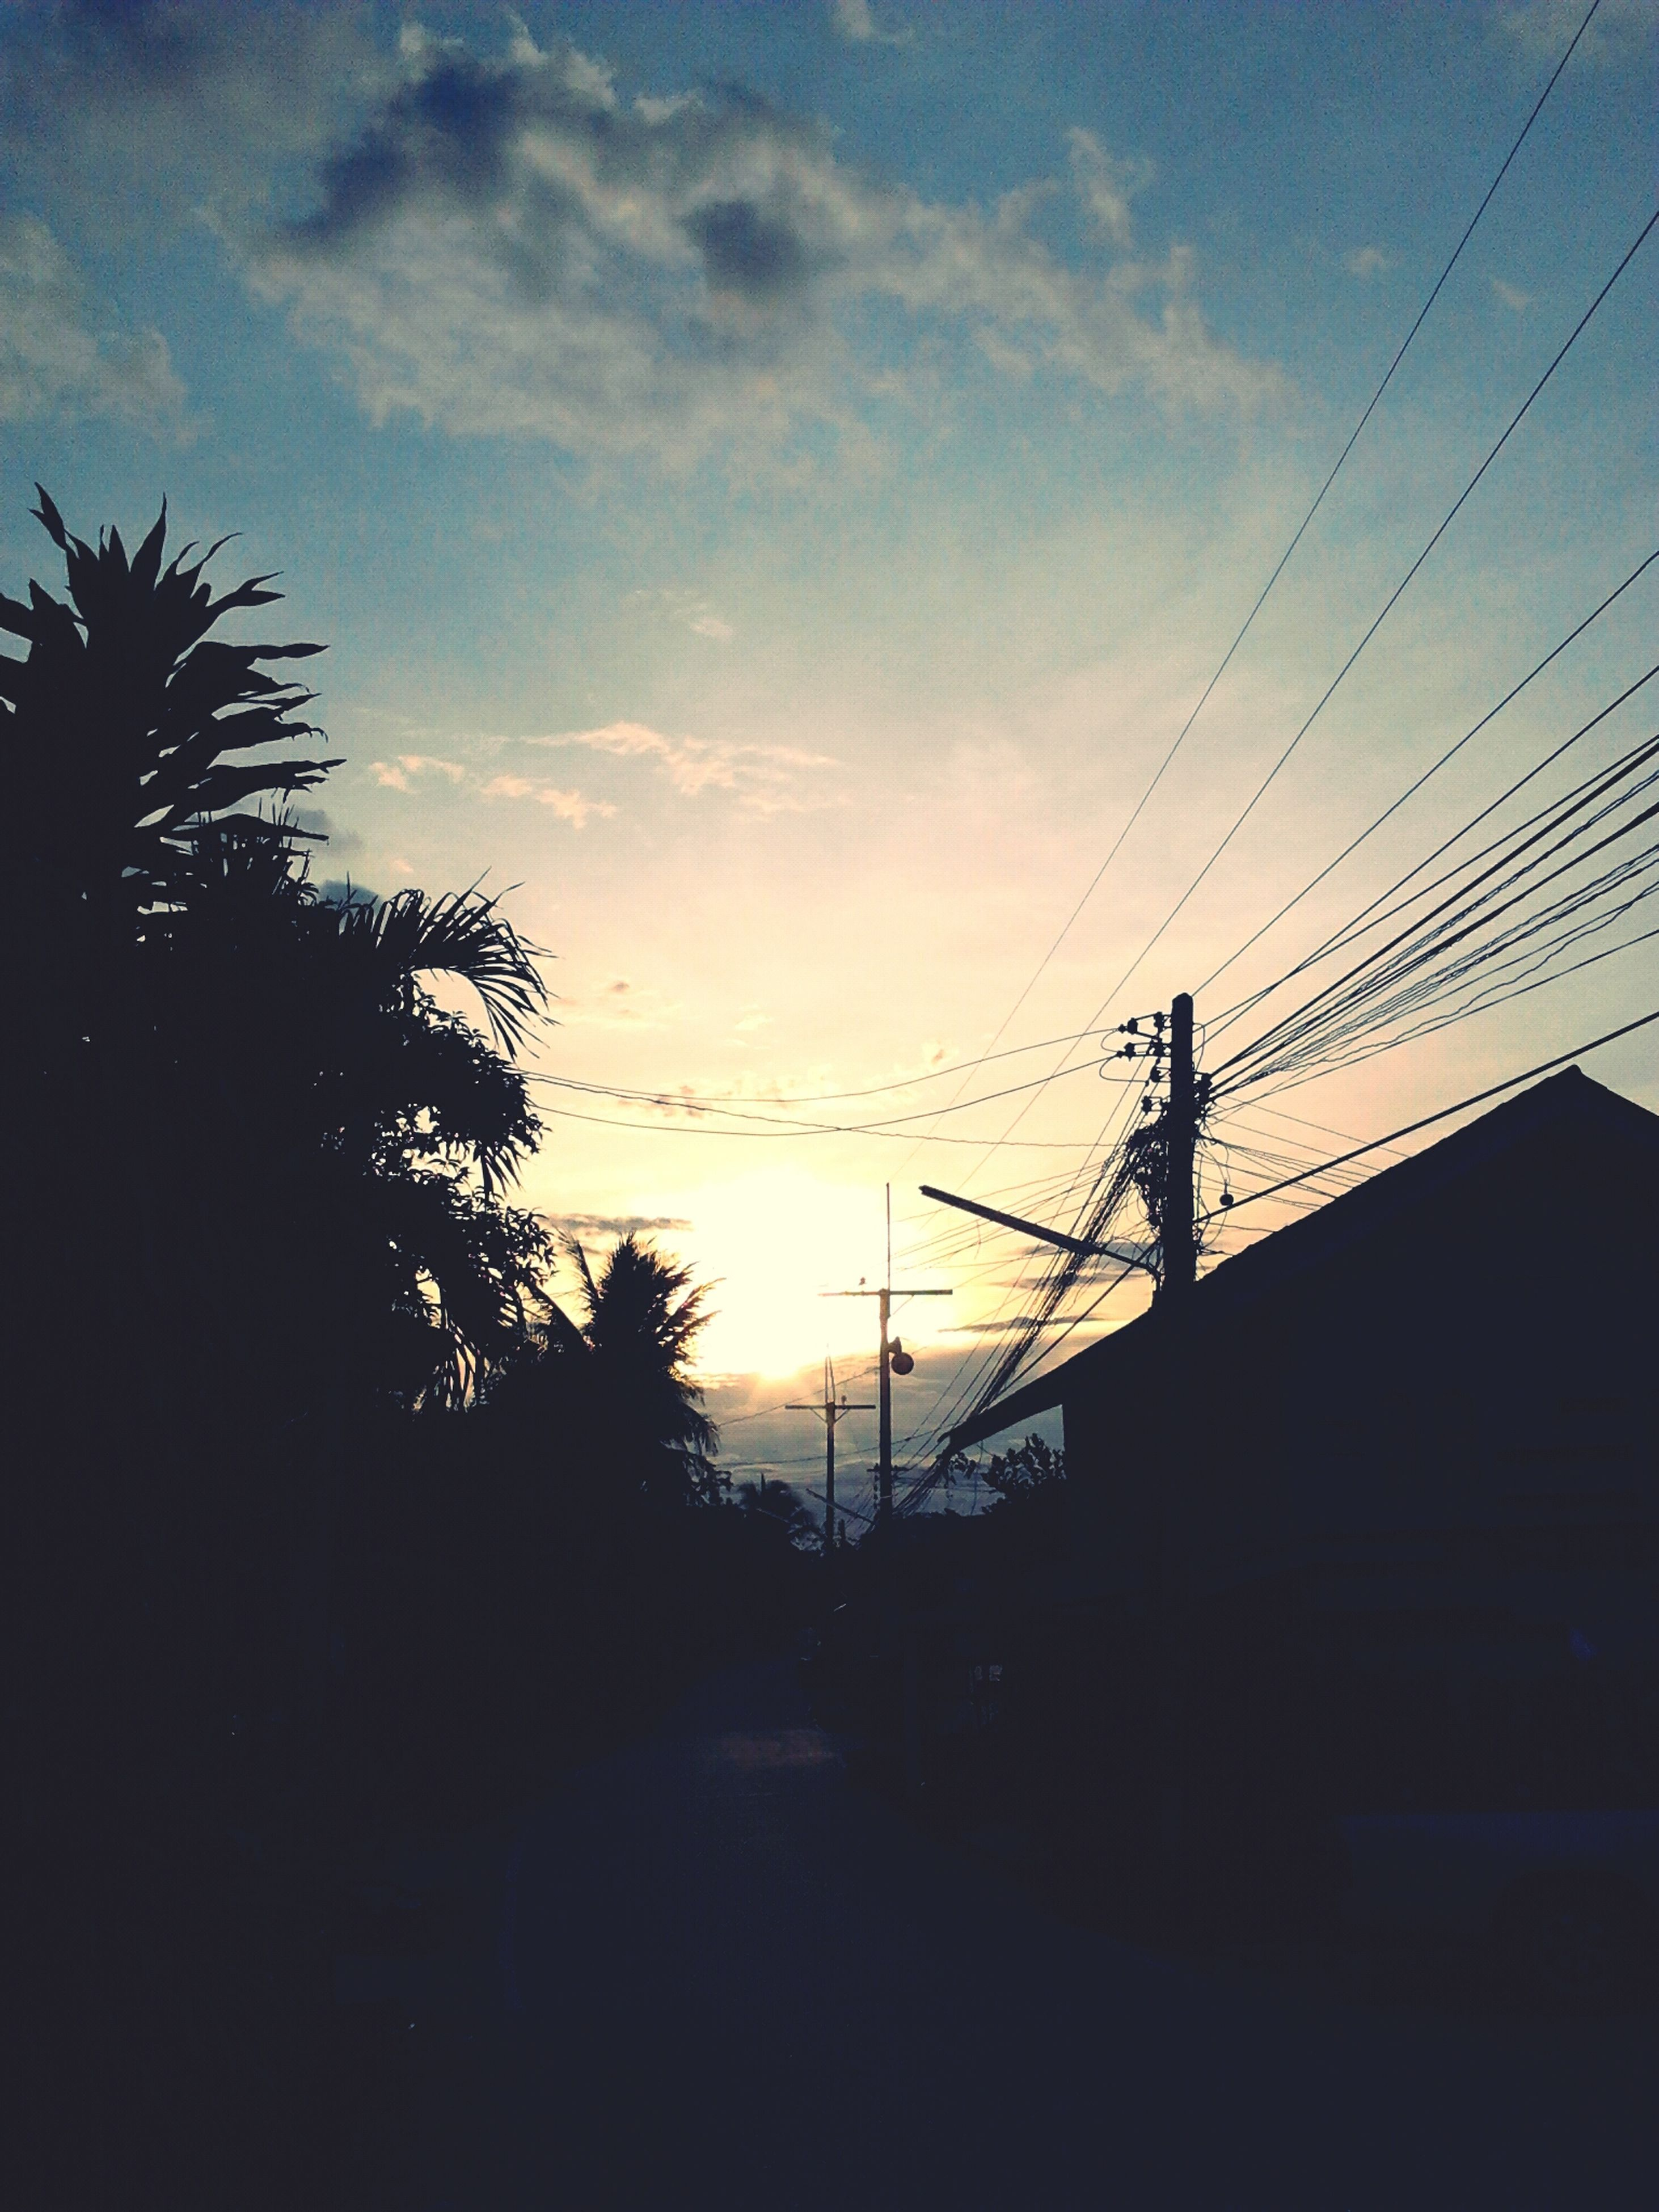 silhouette, electricity pylon, power line, sky, sunset, connection, tree, power supply, cable, electricity, cloud - sky, road, power cable, transportation, low angle view, cloud, built structure, nature, the way forward, dusk